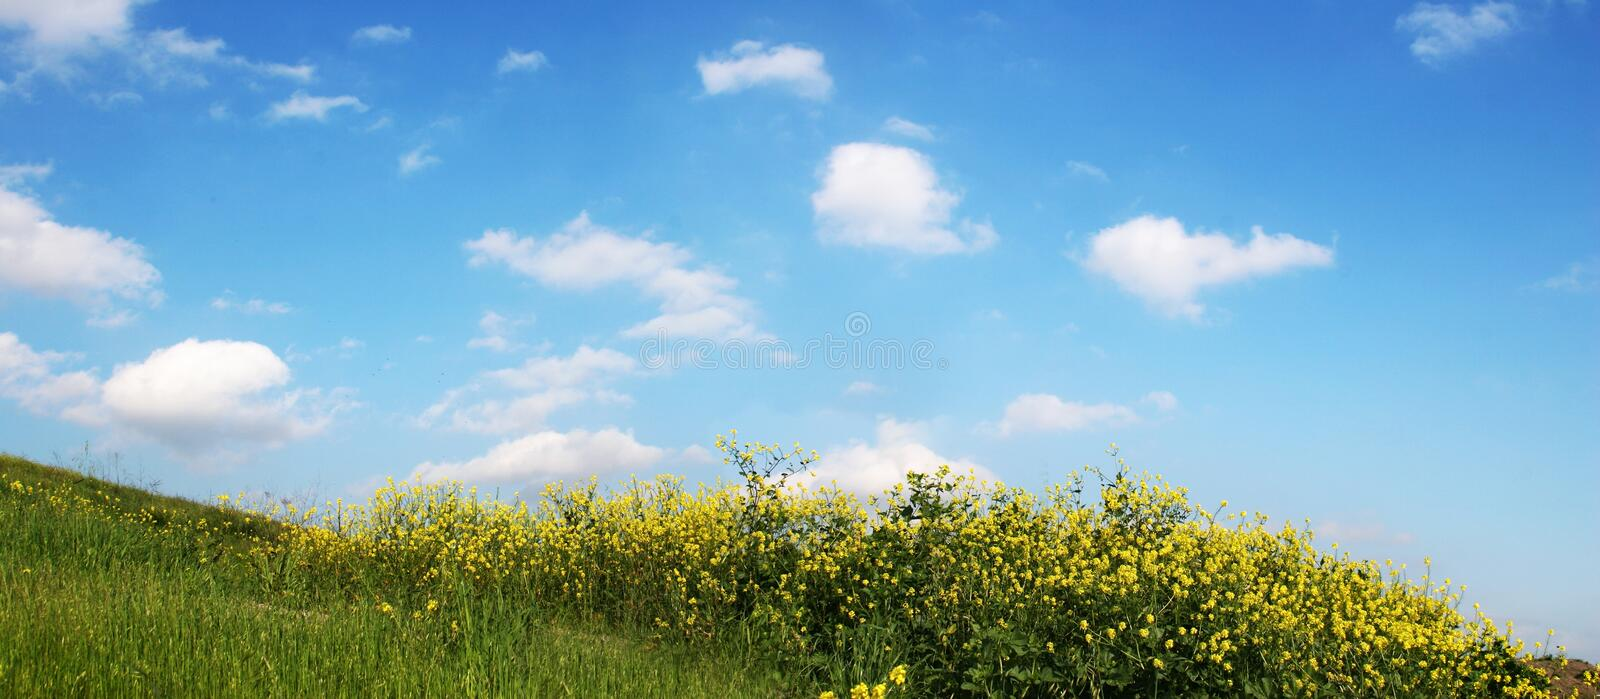 Sky And Grass - wide view royalty free stock images